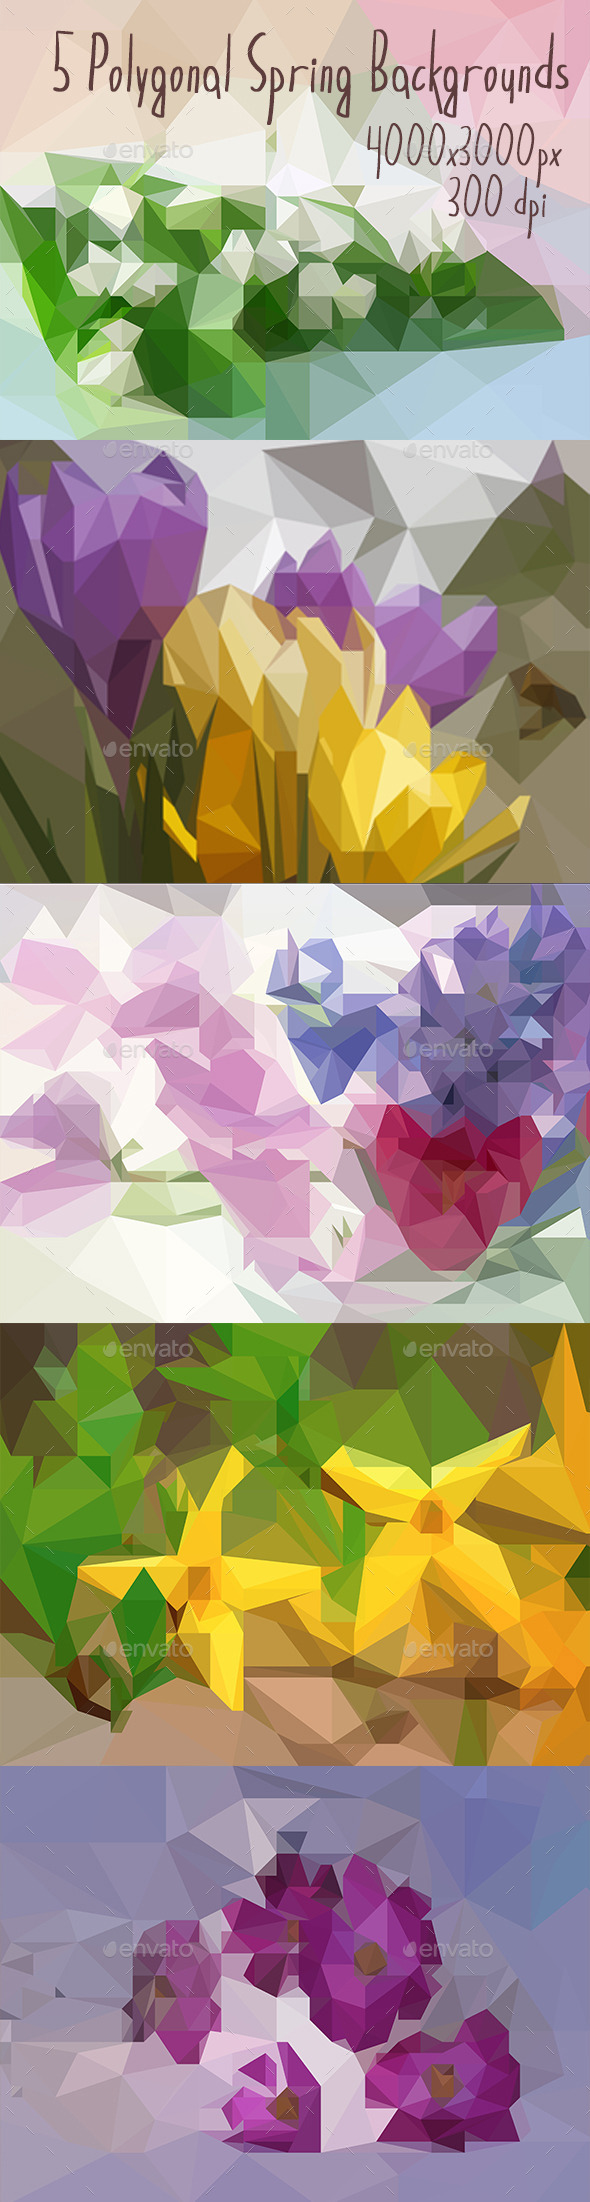 GraphicRiver 5 Polygonal Spring Backgrounds 11168900